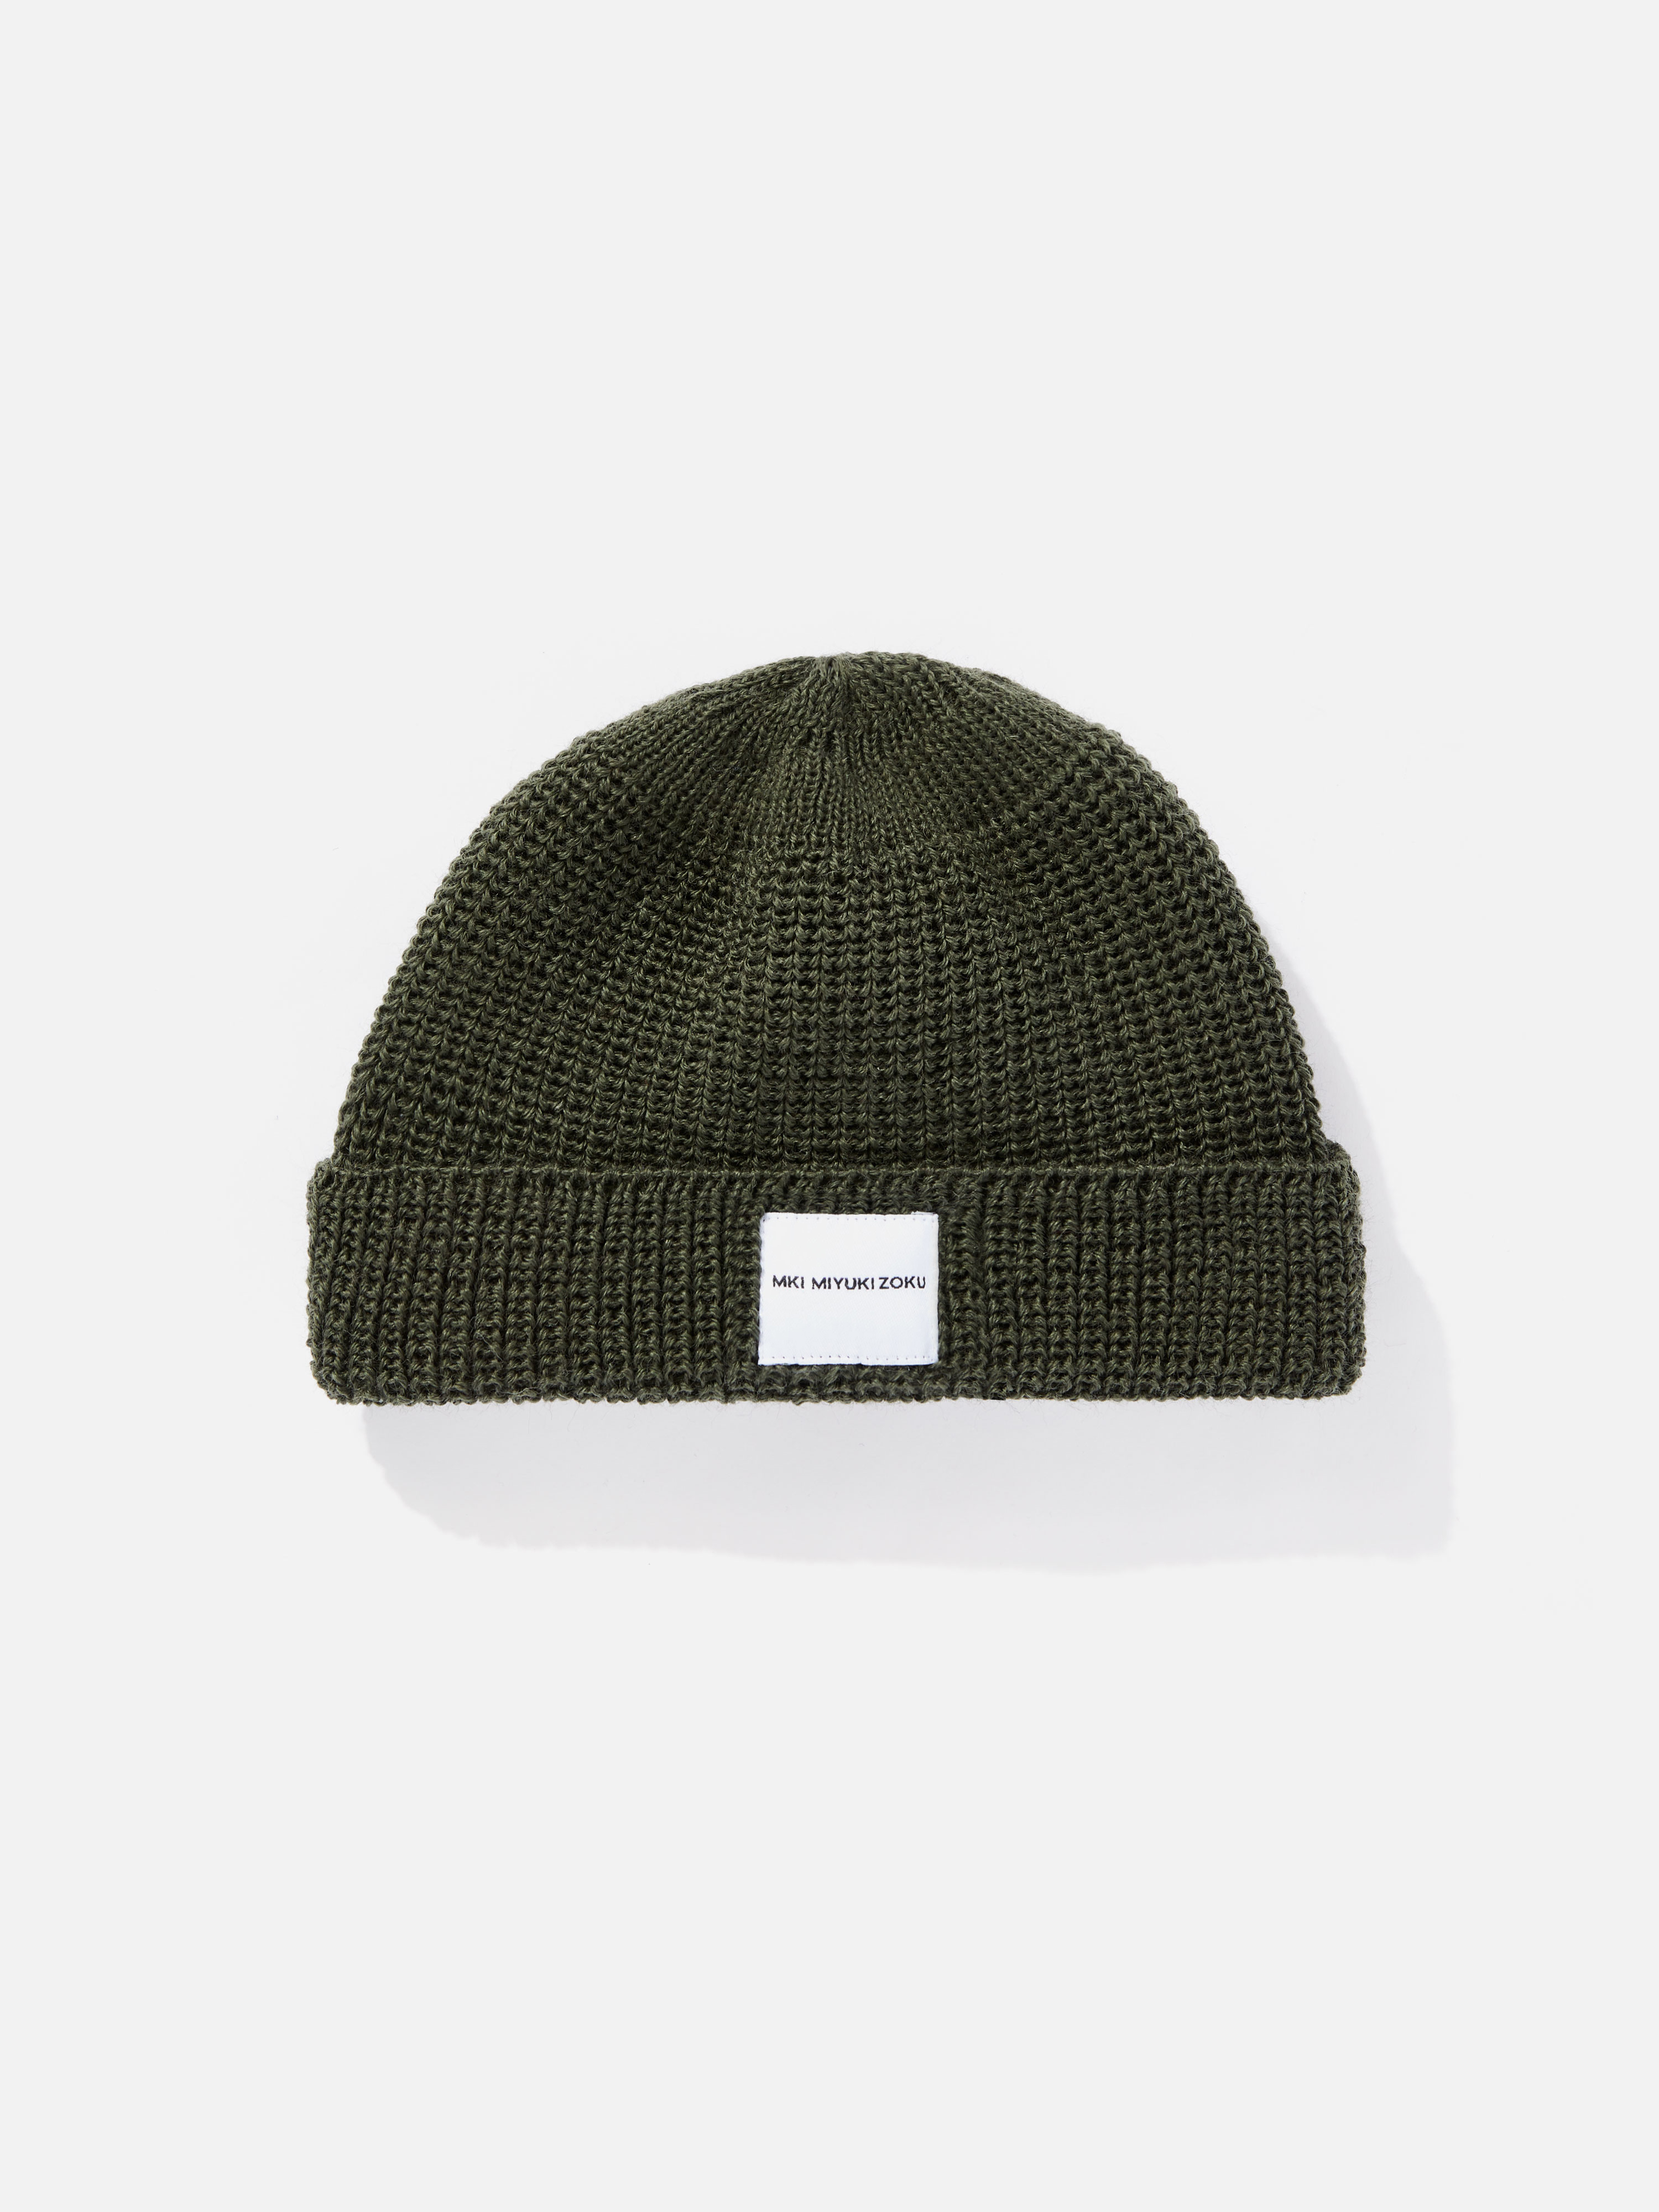 mki virgin wool watch cap short body 1